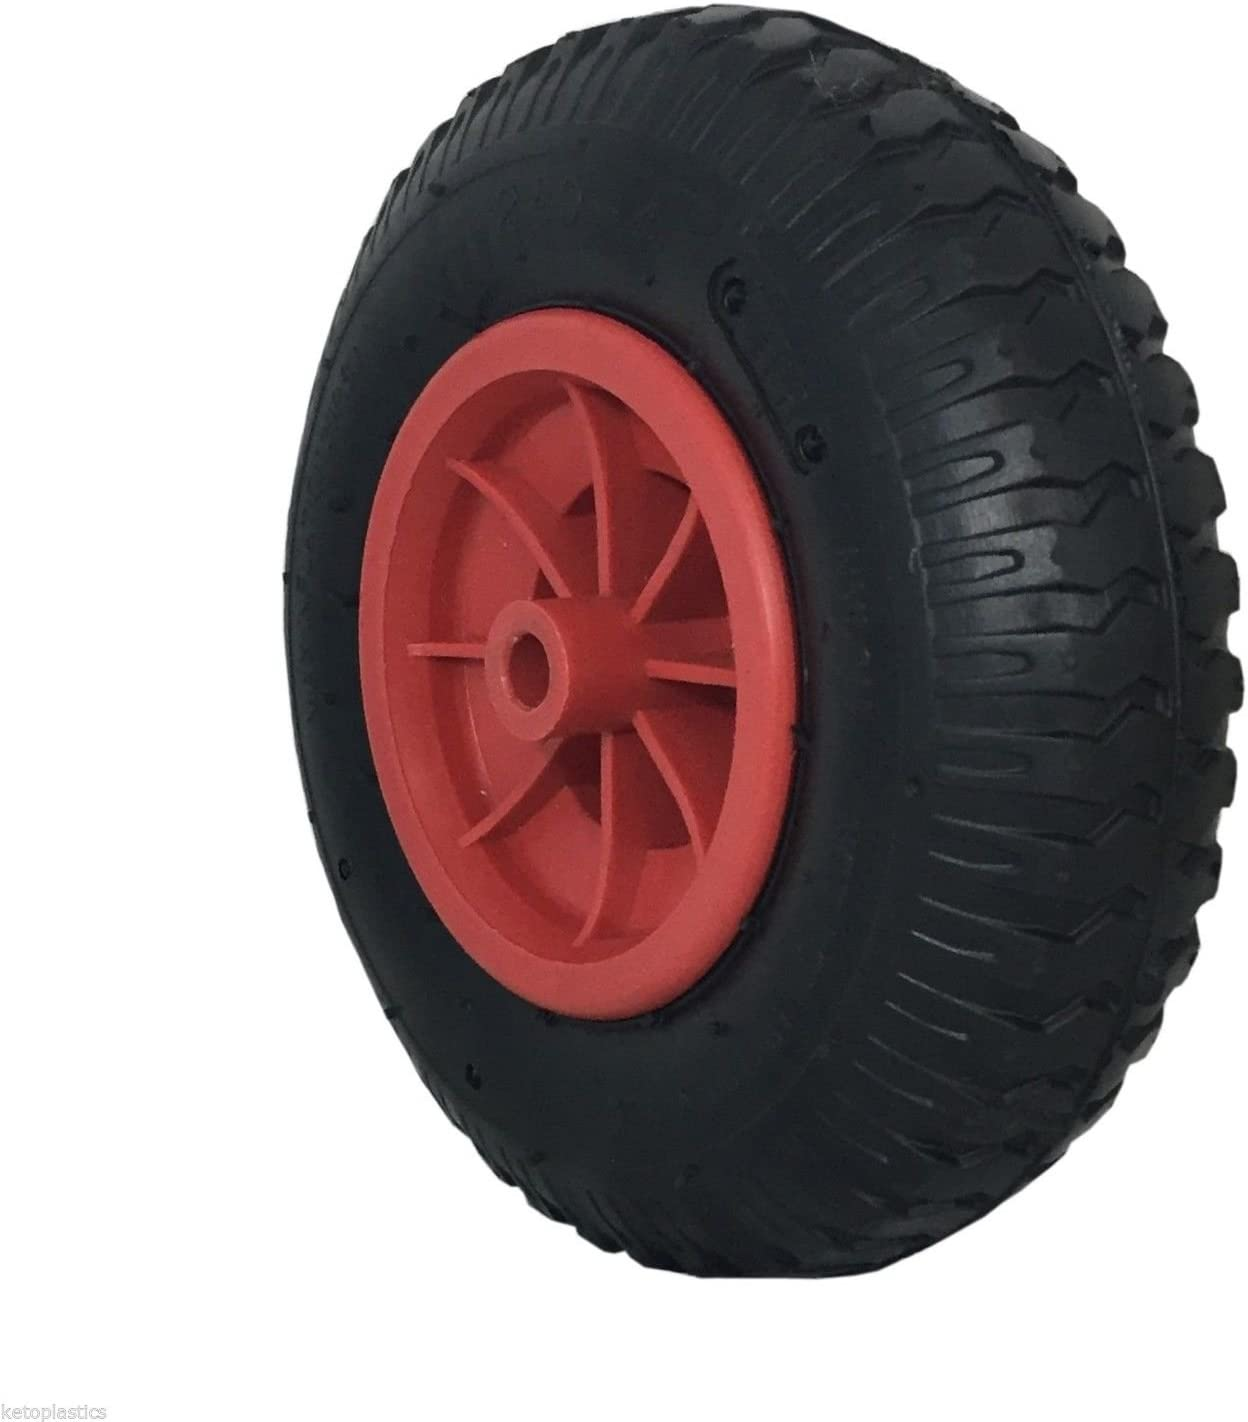 Sack Truck Trolley Bent Valve 220 x 65 4 PLY 2.50-4 Tyre With Inner Tube